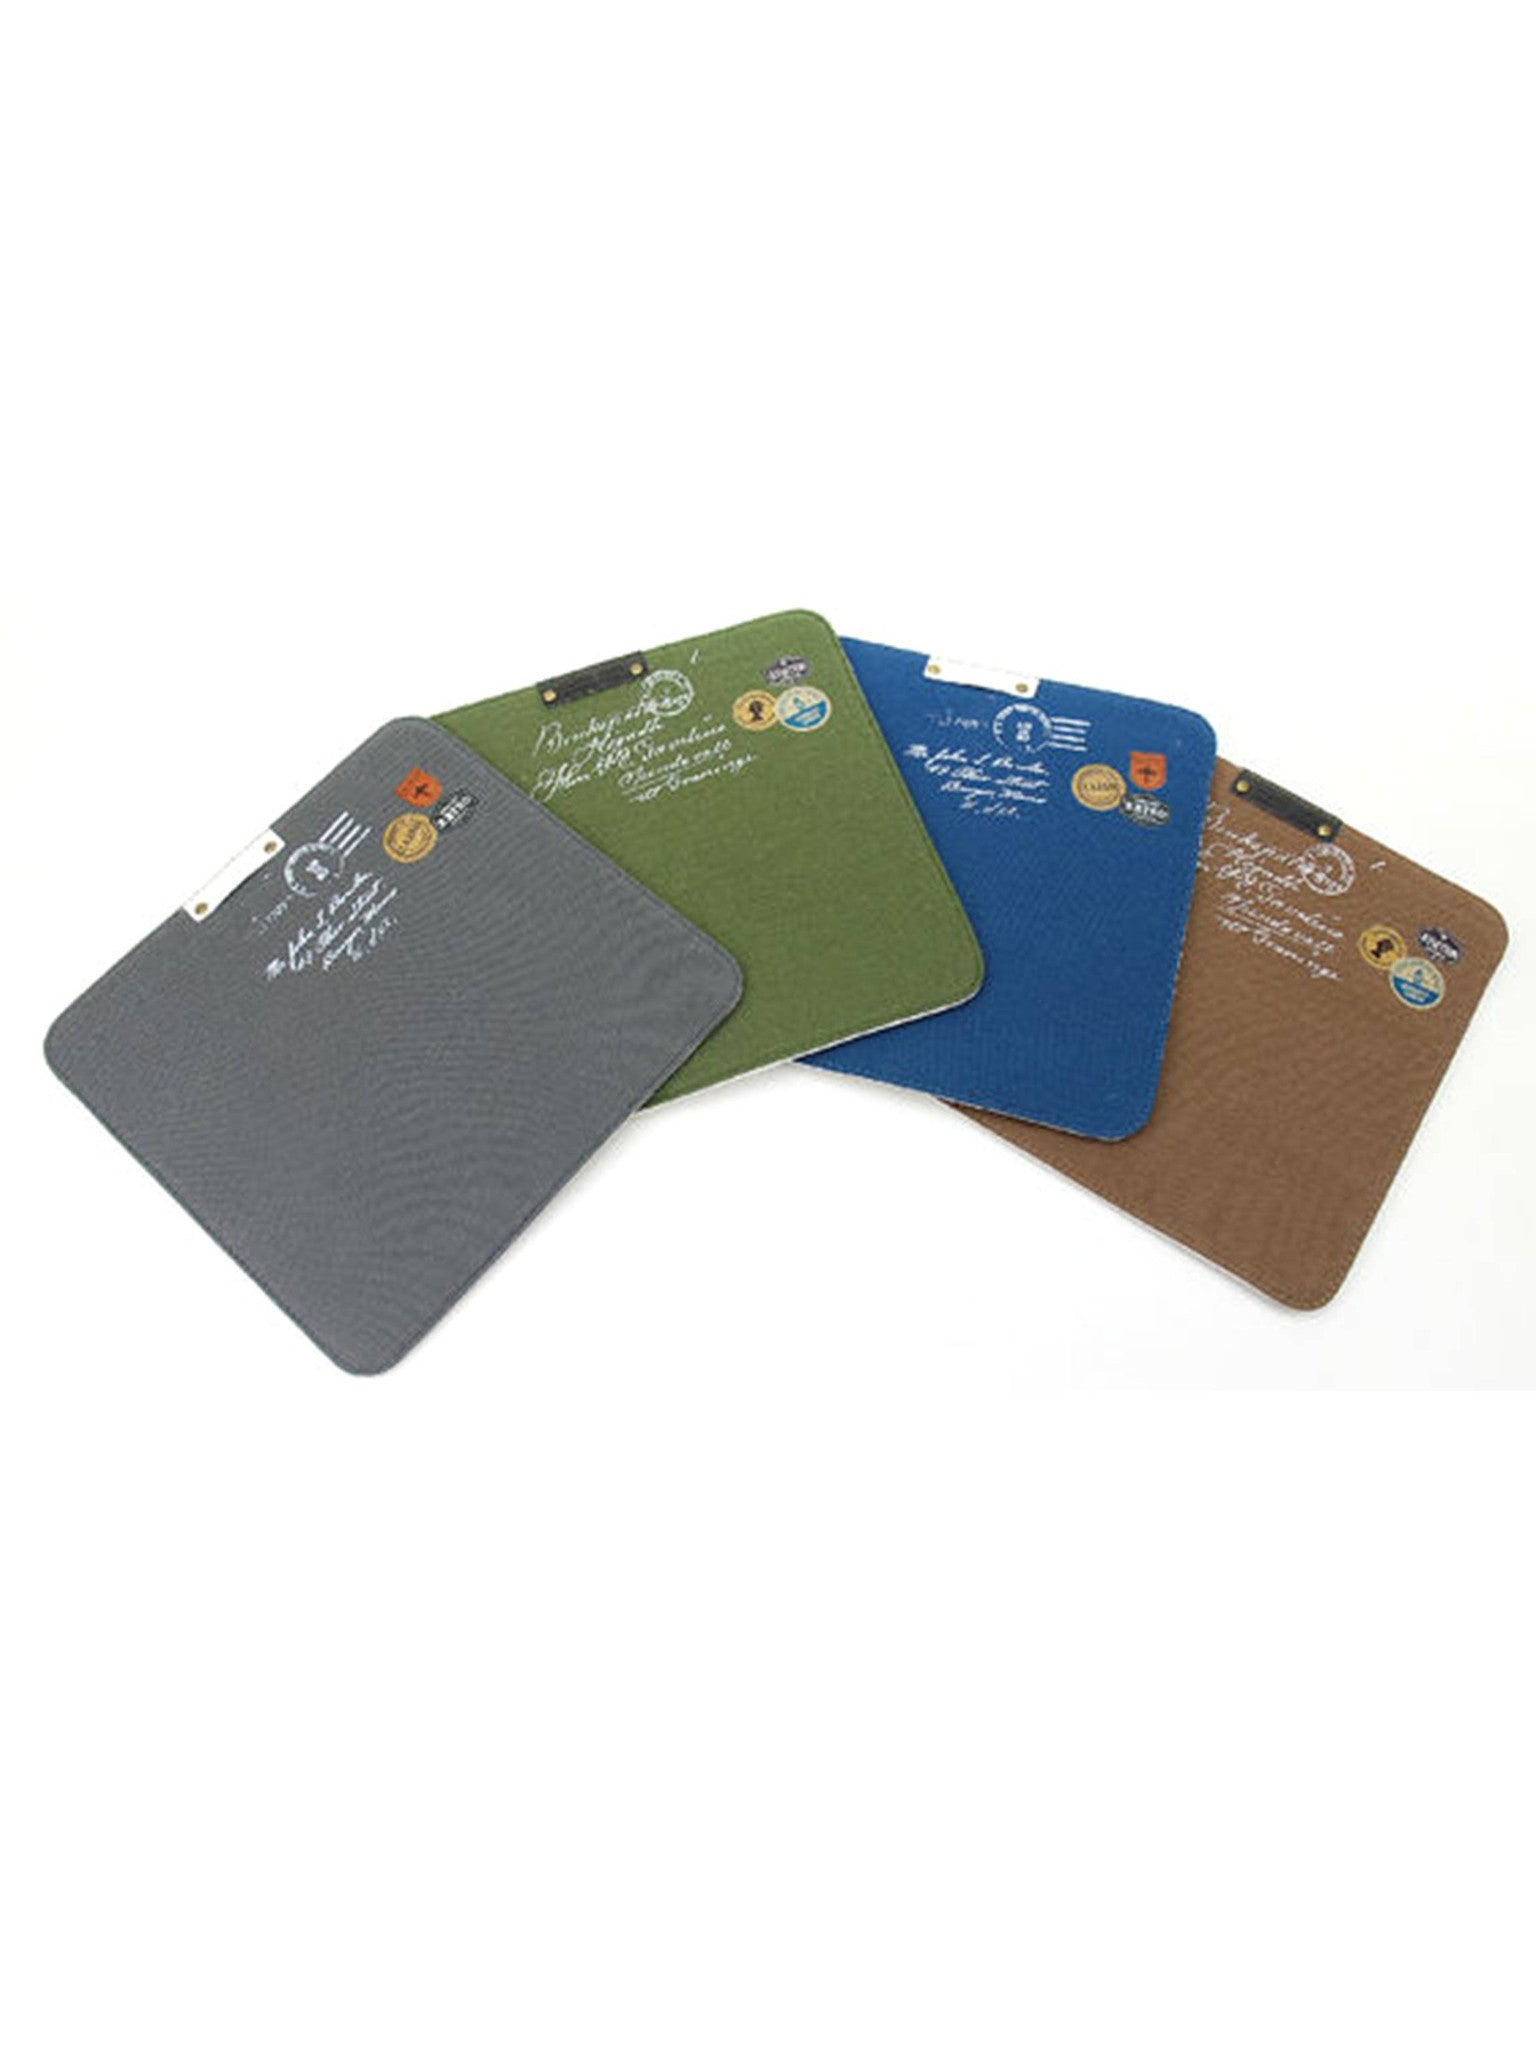 Mouse Pads, Office Mouse Pads, Office Gifts, Co-worker Gifts